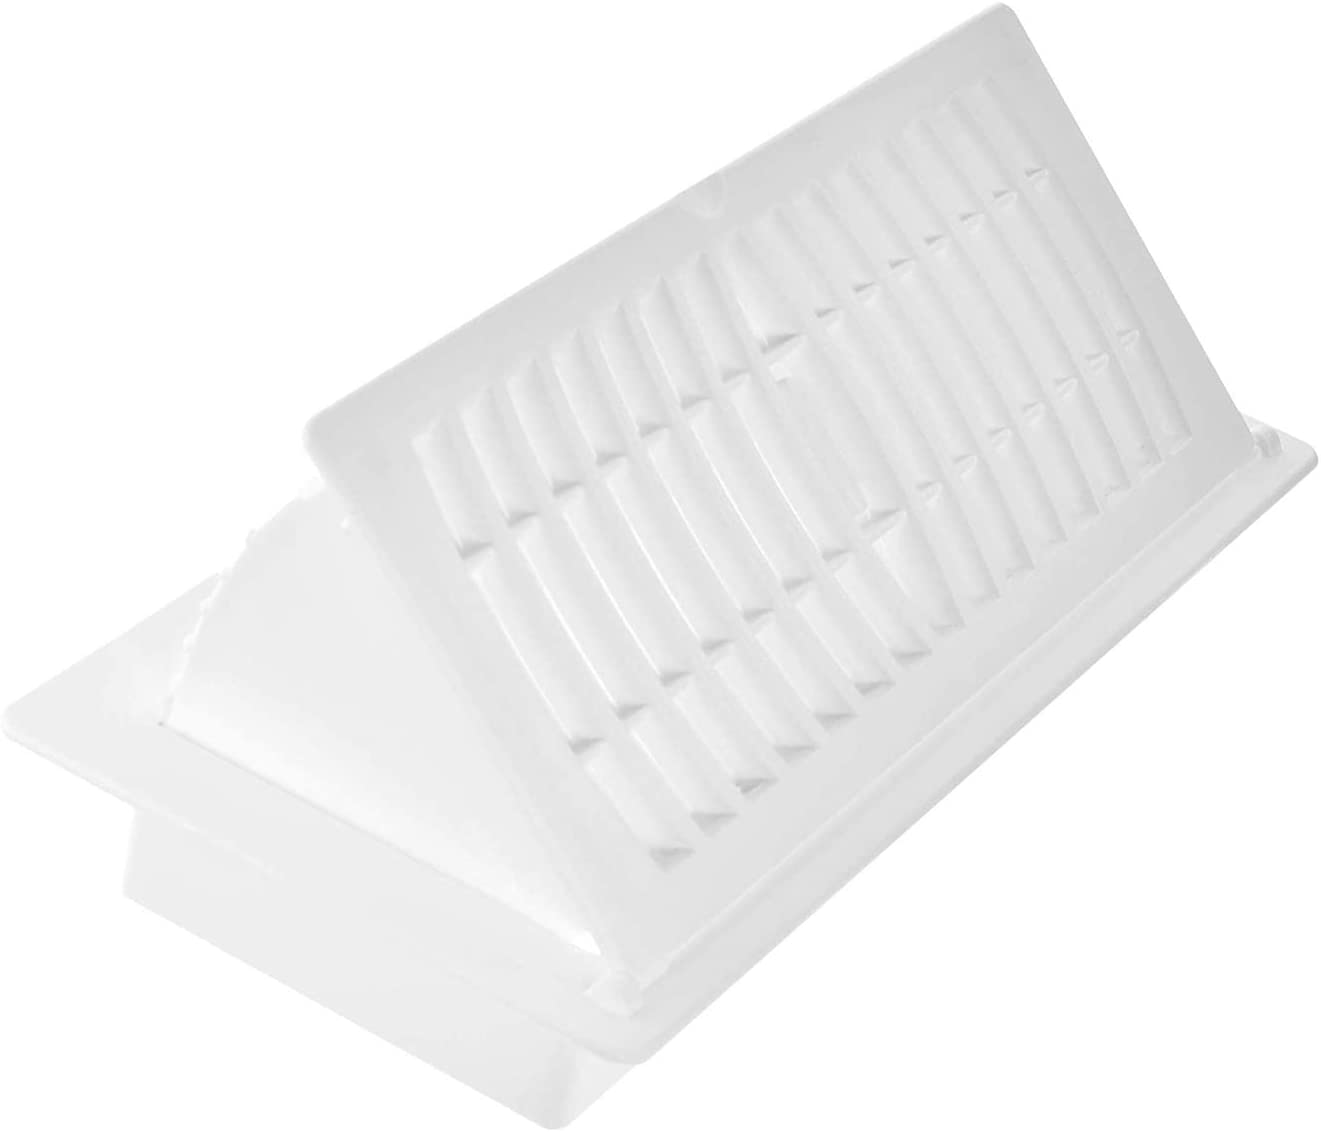 """Hartford Ventilation Pop Up Floor Vent Register - 4"""" x 12""""(Duct Opening) - Air Vent Deflector for Home Heat/AC - Extender for Under Furniture, Couch, Cabinetry - Floor or Ceiling Use (1, White)"""